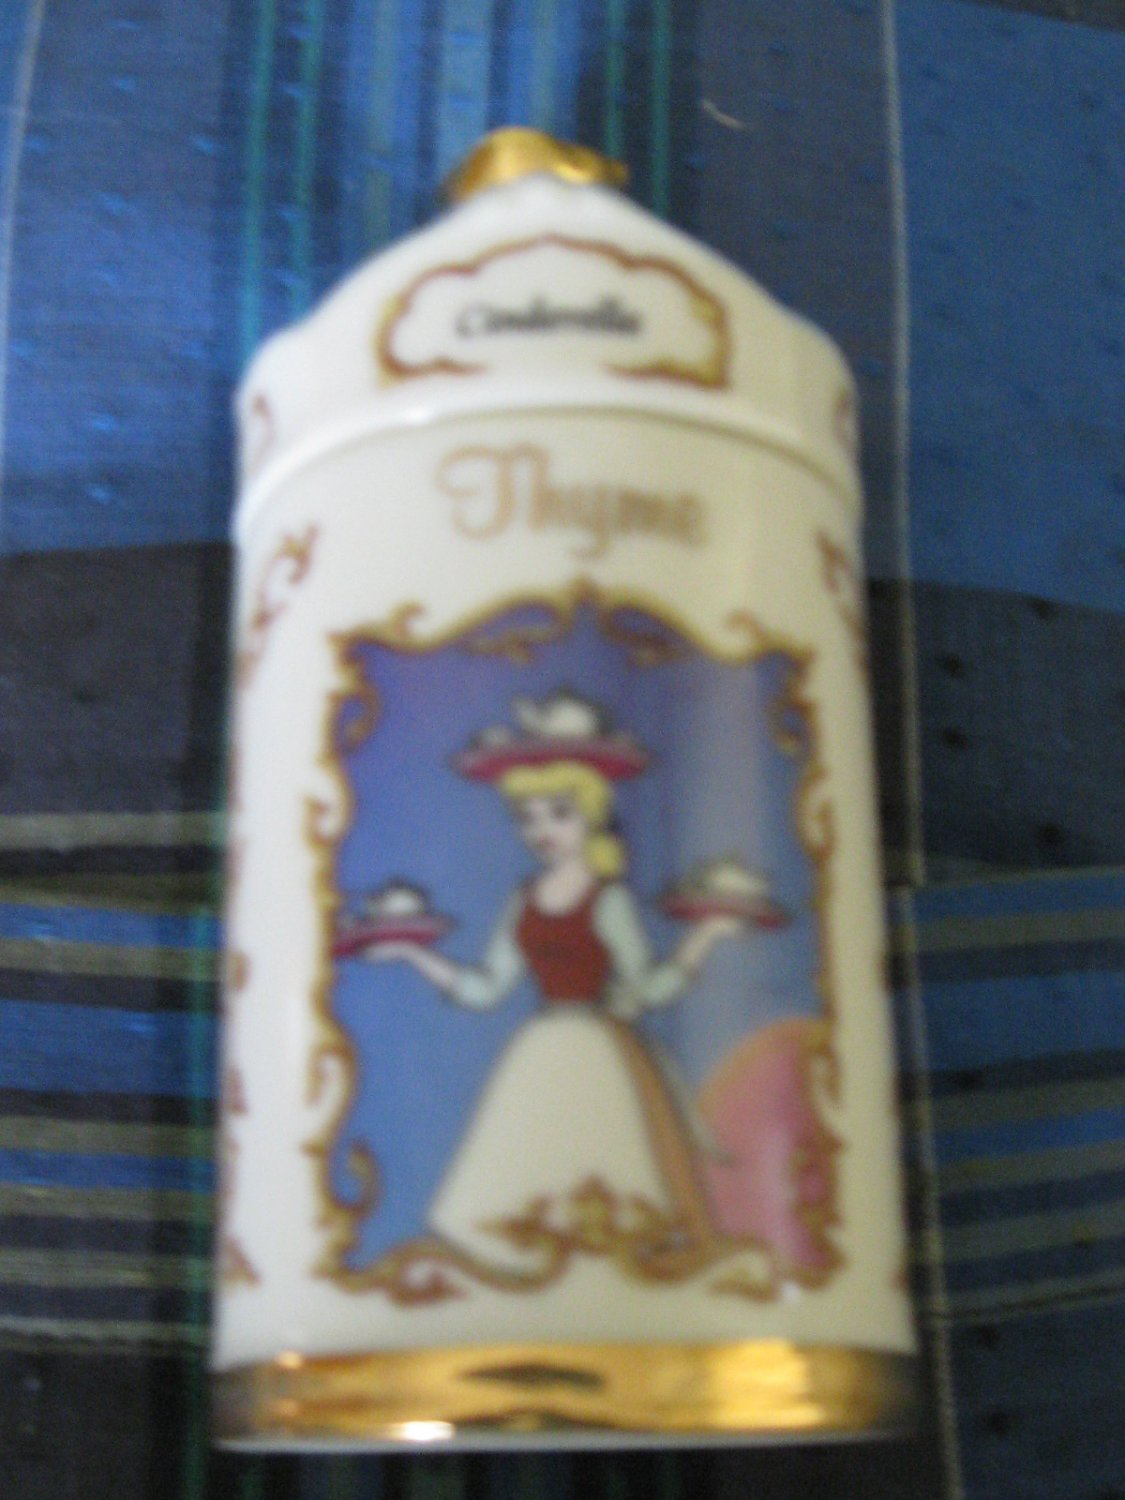 Awesome Disney Cinderella Thyme Spice Jar Lenox 1995 Collection